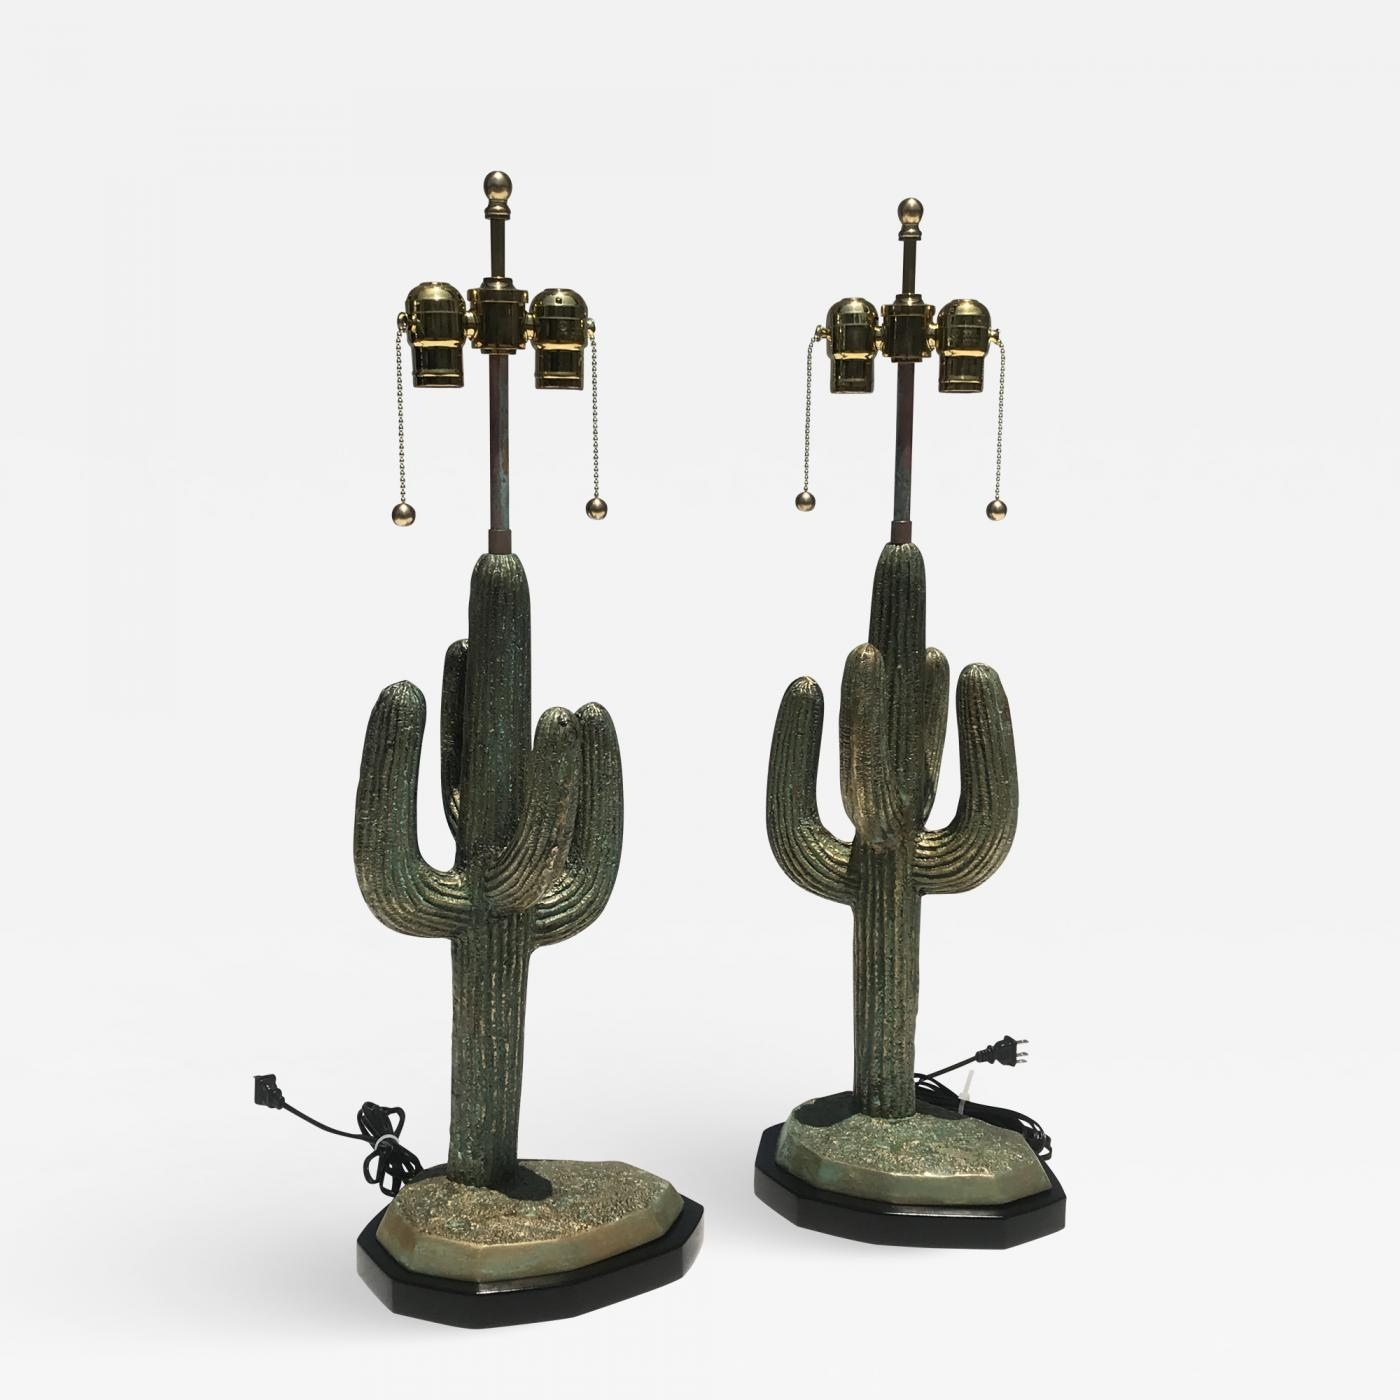 Alain Chervet - Pair Brass Cactus Lamps In Verdigris Patina pertaining to Cacti Brass Coffee Tables (Image 3 of 30)